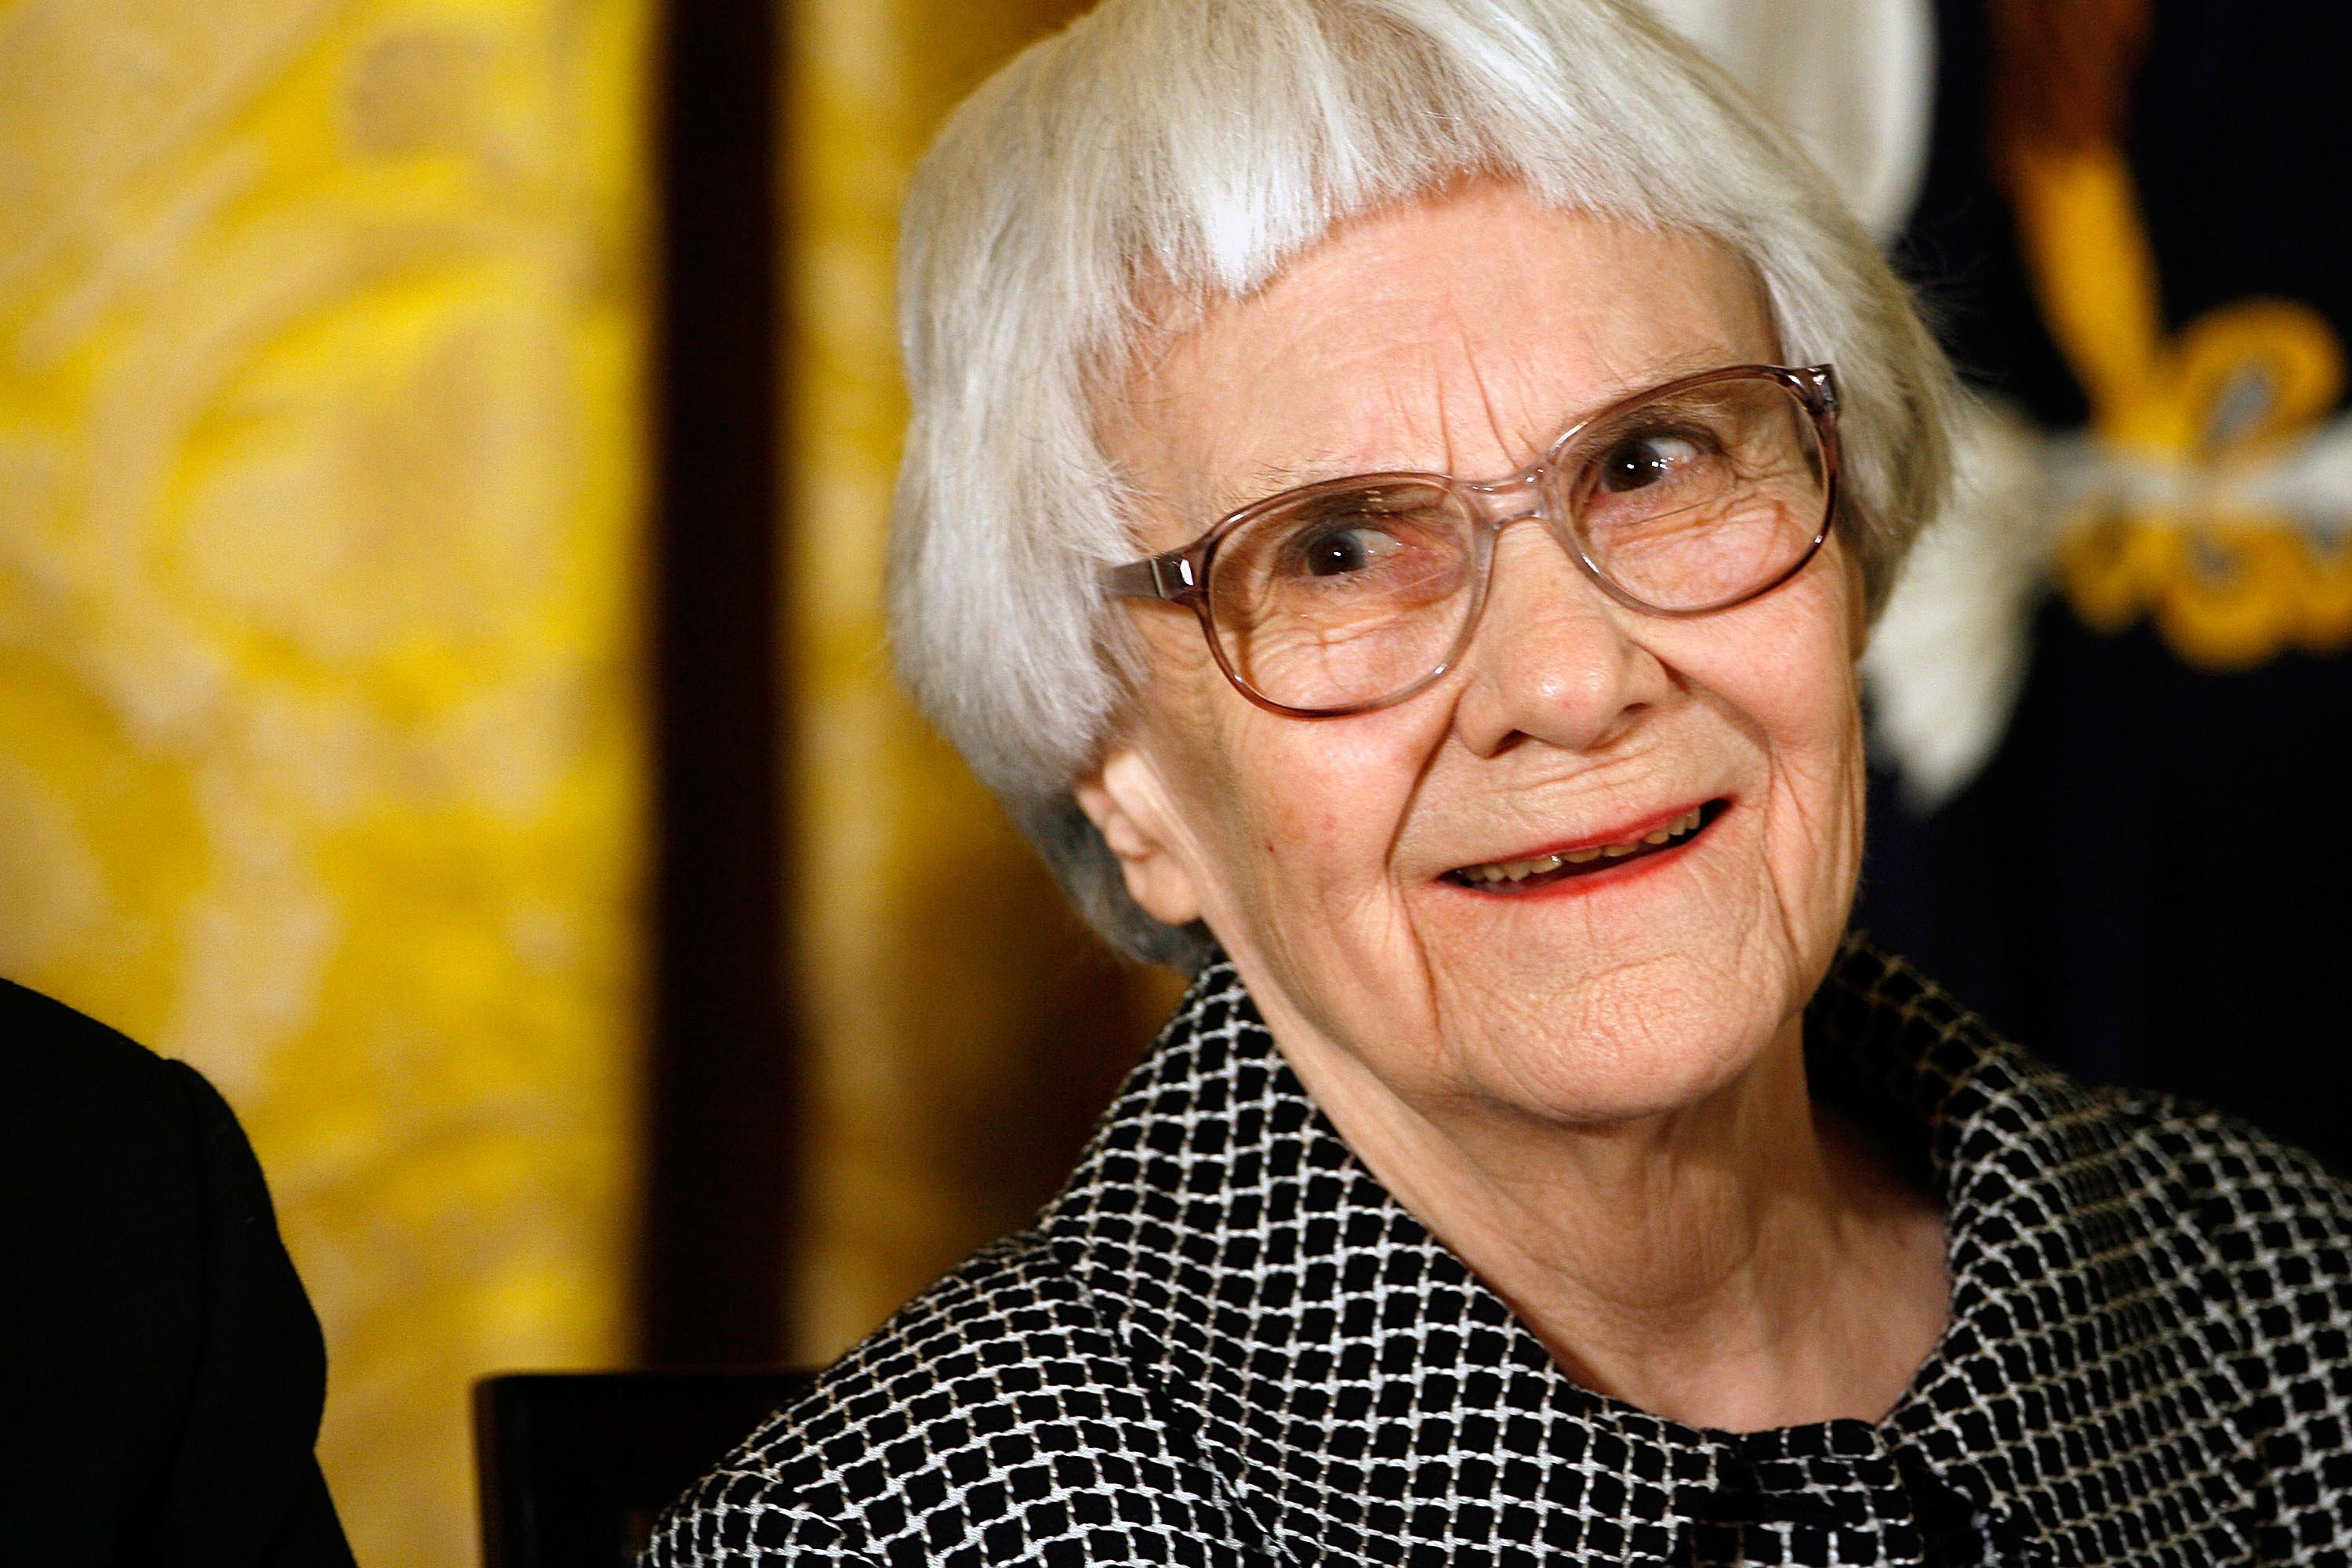 5 November 2007: Harper Lee, Pulitzer Prize-winner and author of 'To Kill A Mockingbird', smiles before receiving the 2007 Presidential Medal of Freedom. (Photograph by Chip Somodevilla/Getty Images)